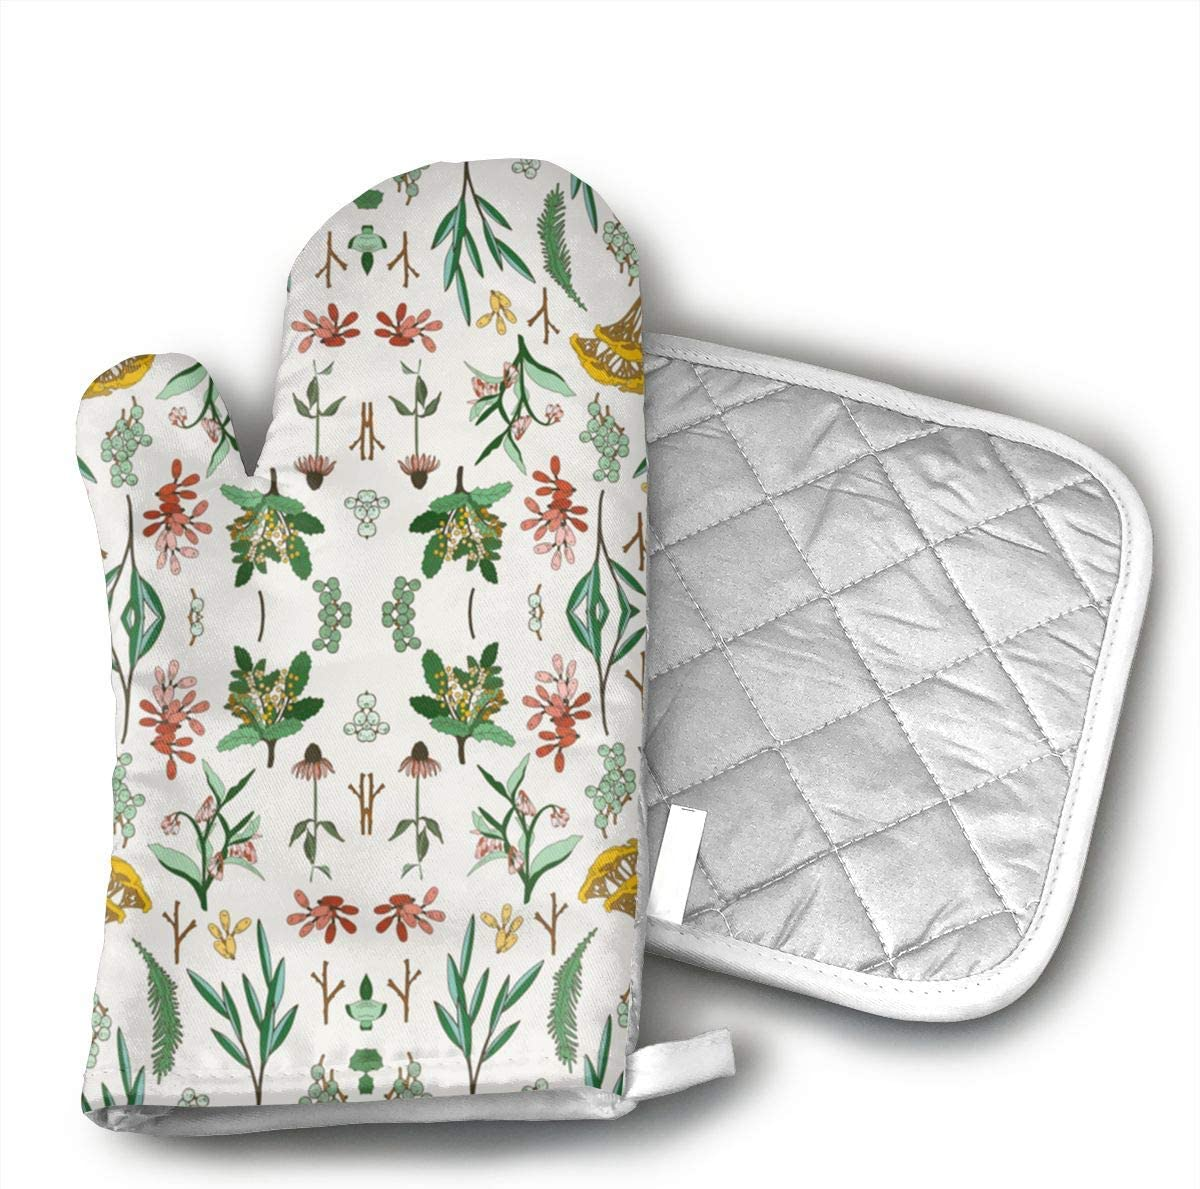 GUYDHL Herbal Study Light Fabric Print for 2 Pair Oven Mitt and Pot Holder for Cooking,Barbecue,Baking,Grilling